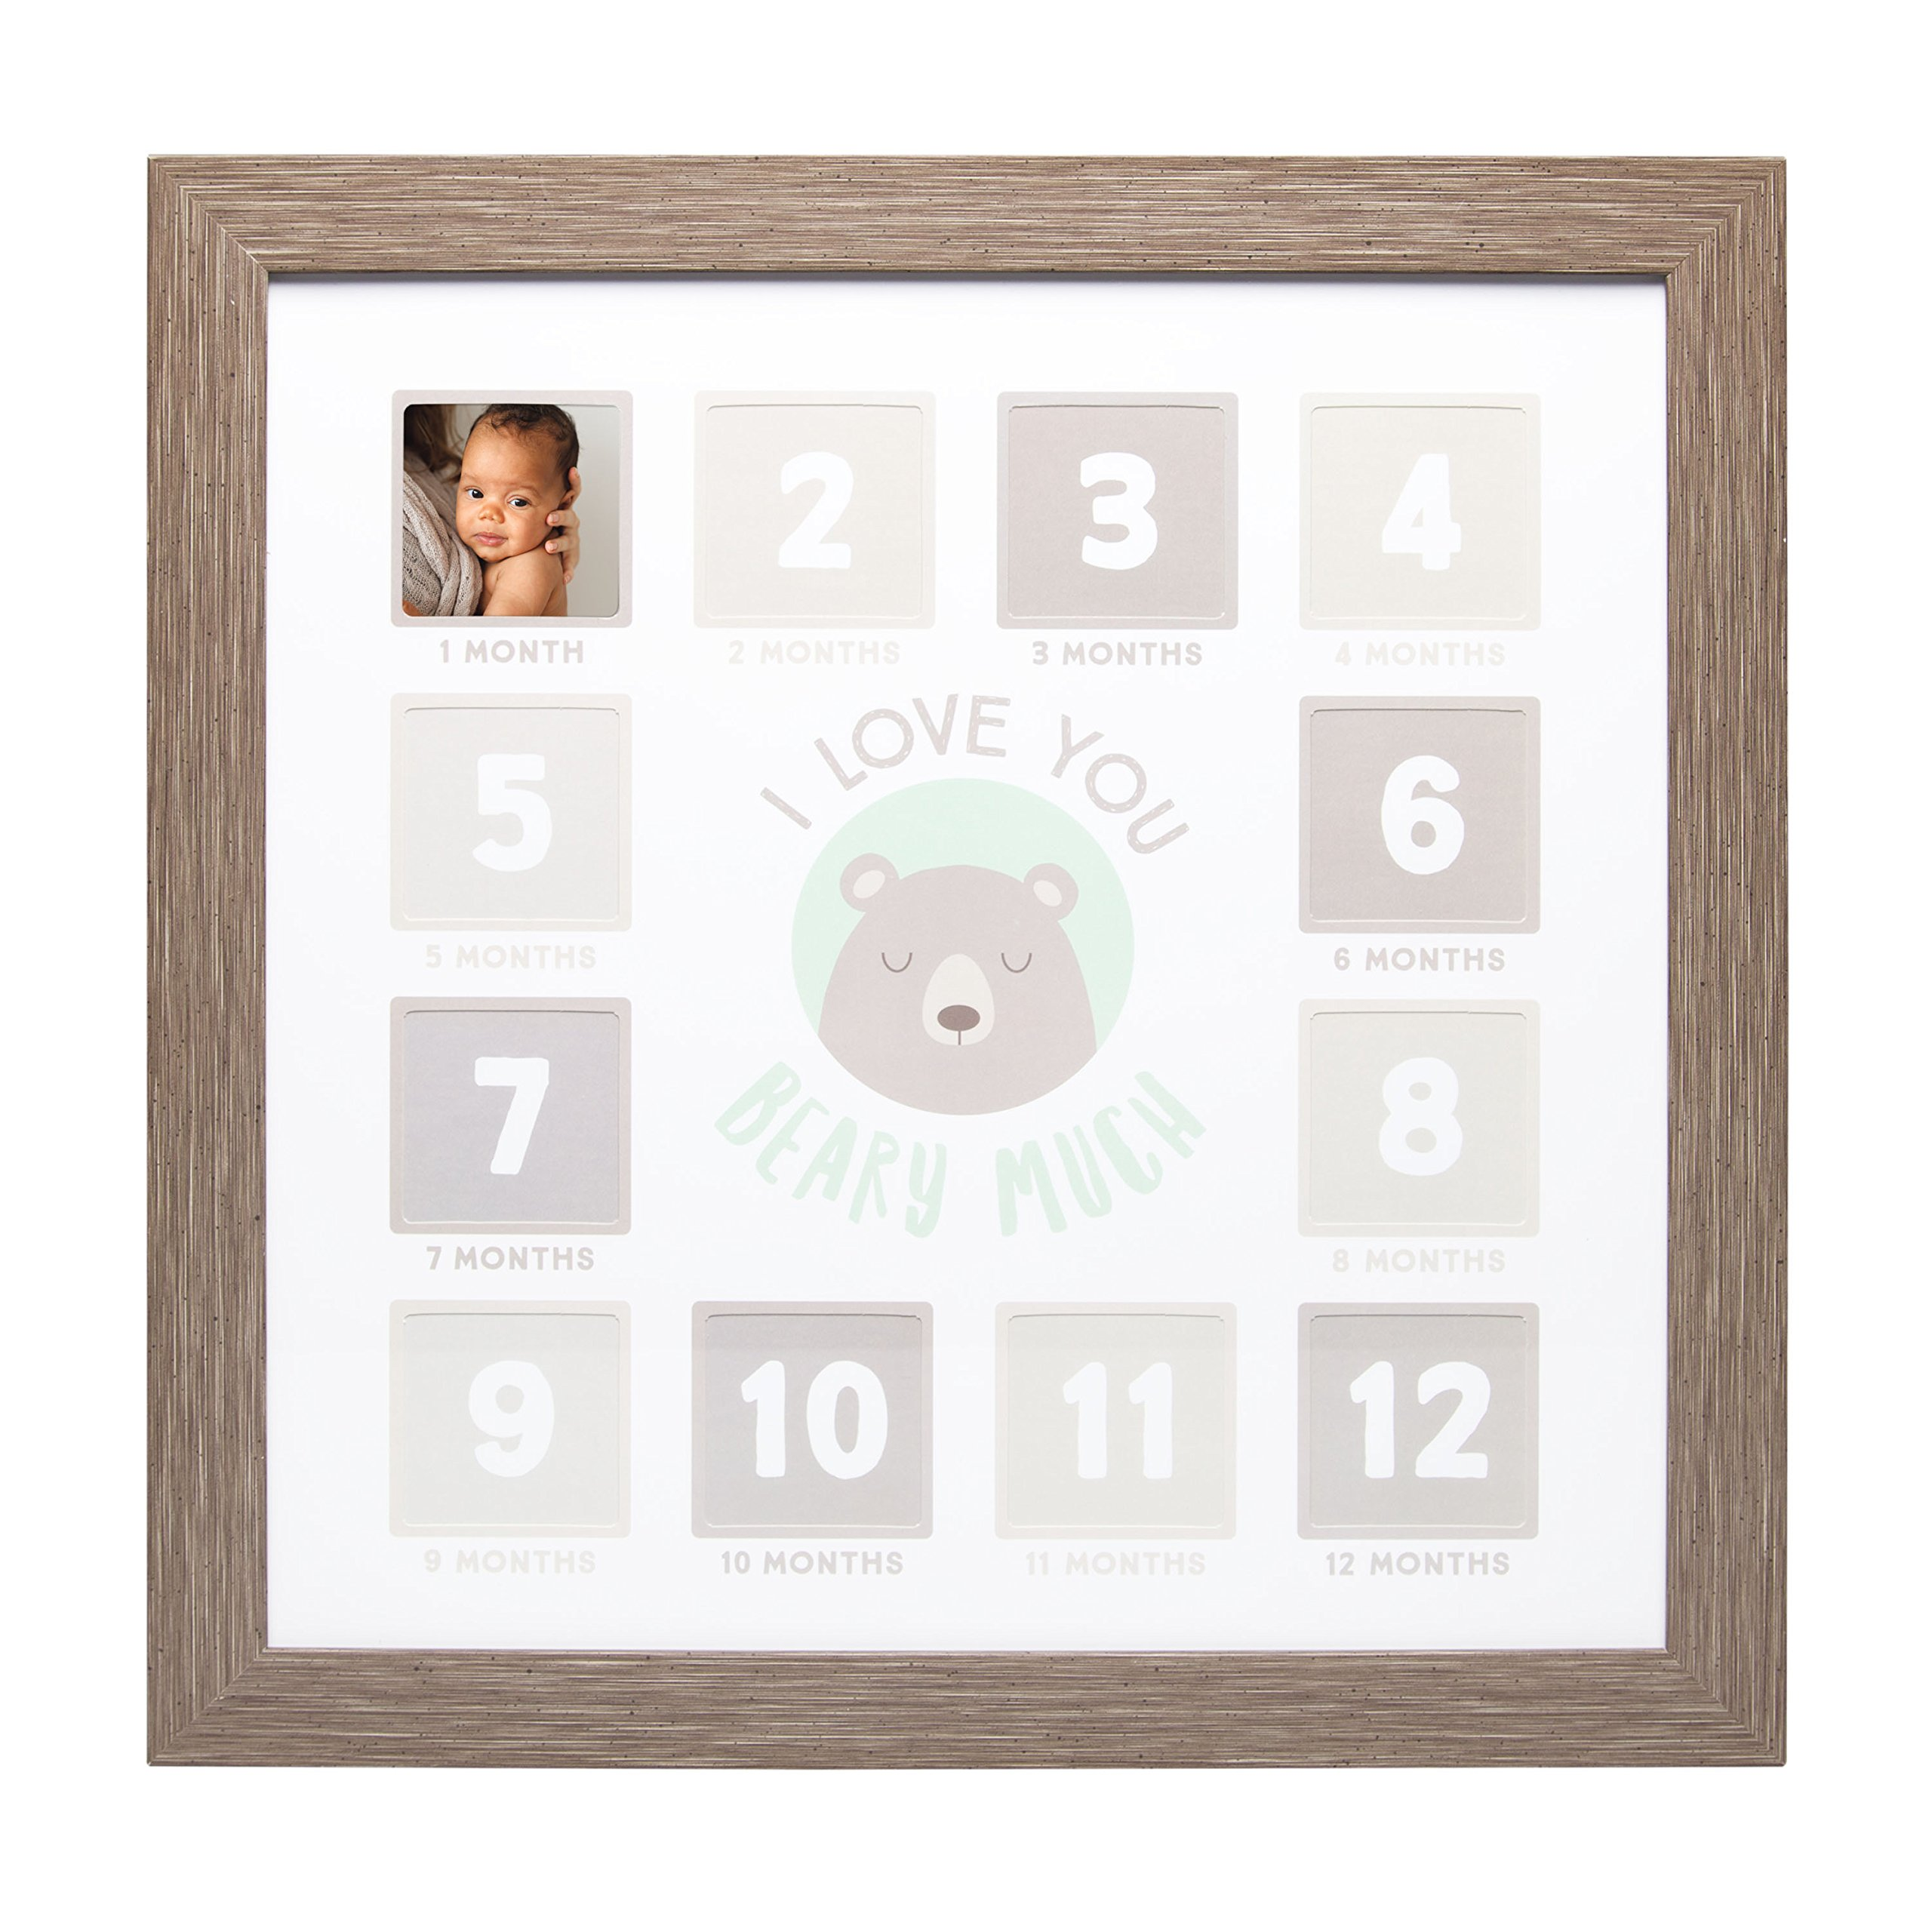 Kate & Milo First Year Keepsake Photo Frame, I Love You Beary Much, Brown